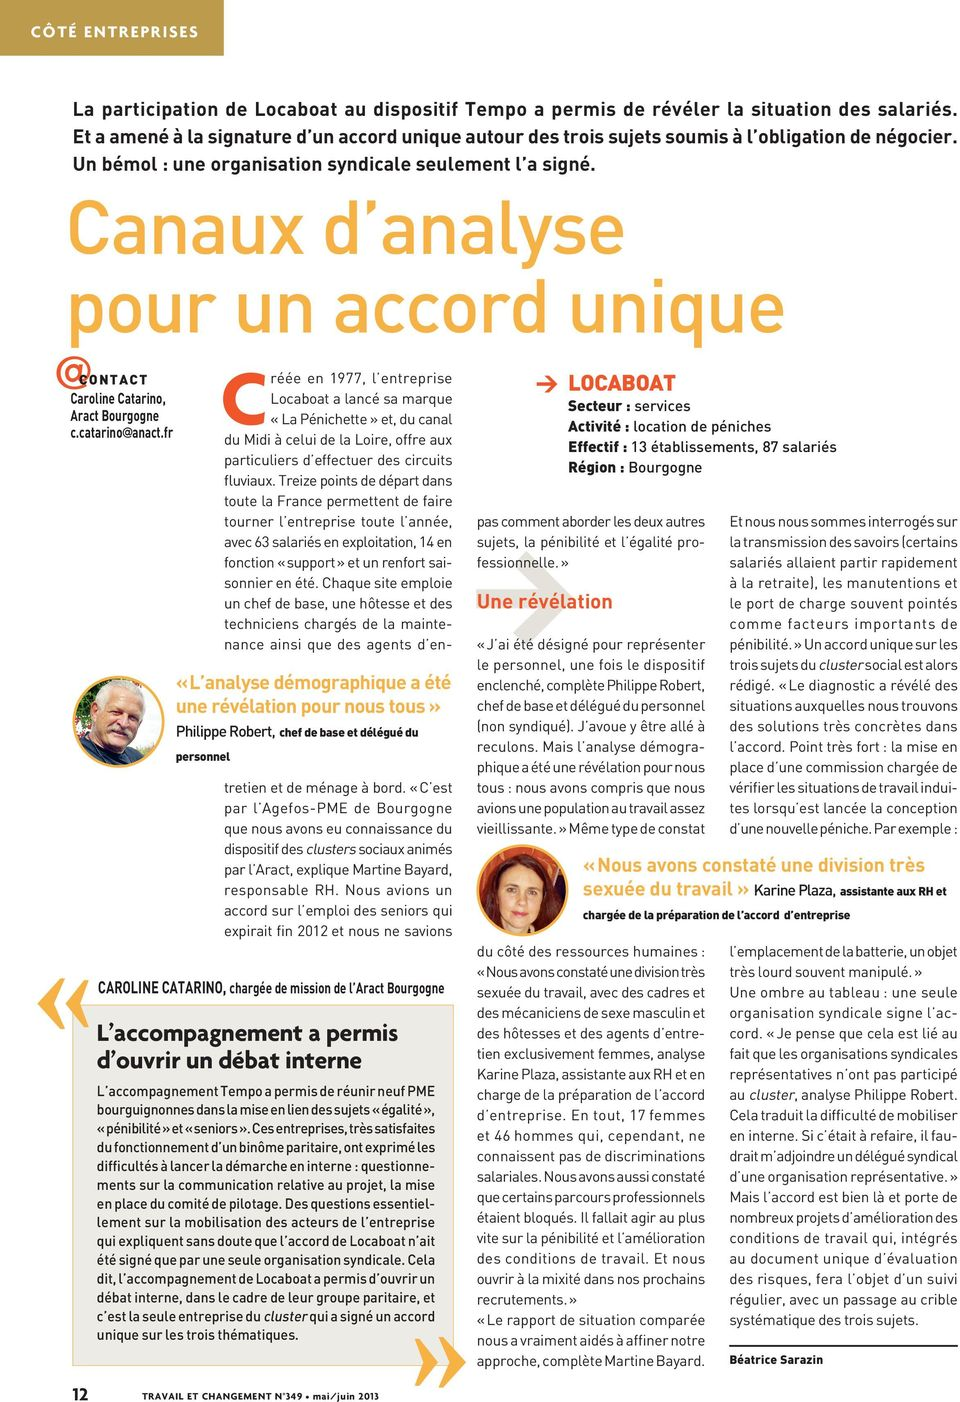 Canaux d analyse pour un accord unique @ CONTACT Caroline Catarino, Aract Bourgogne c.catarino@anact.